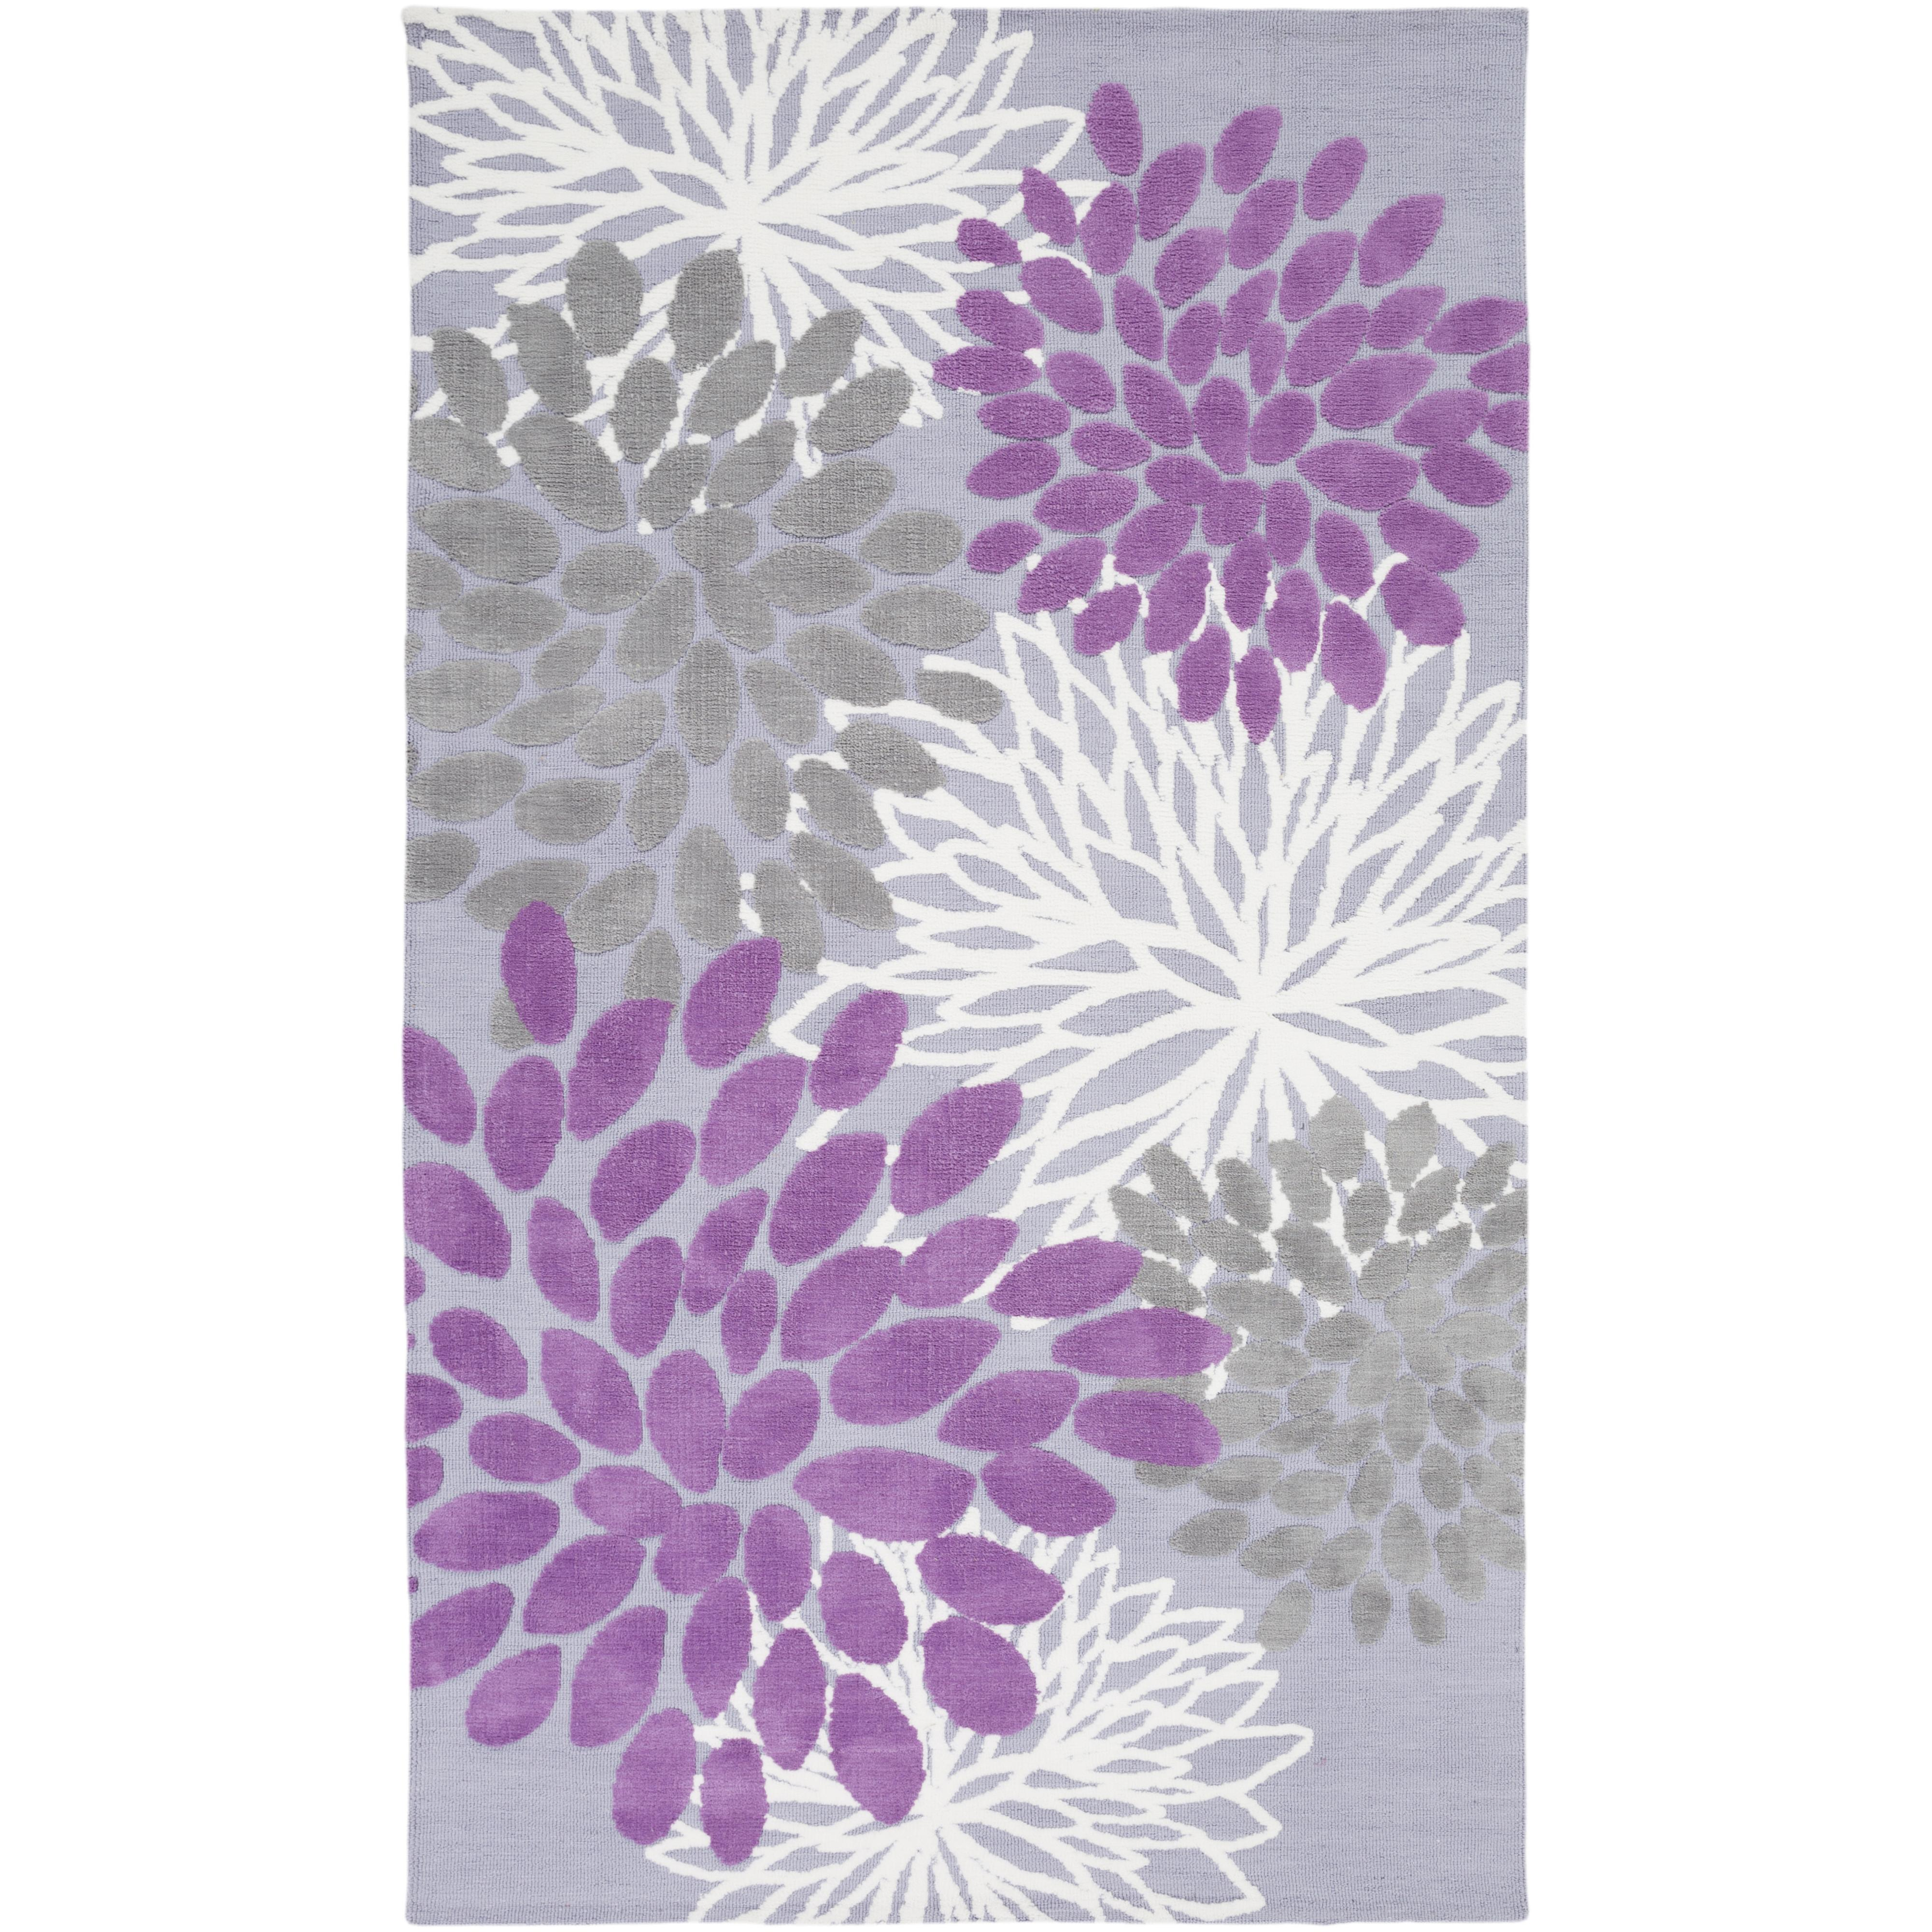 Abigail 8' x 11' by Surya at Upper Room Home Furnishings